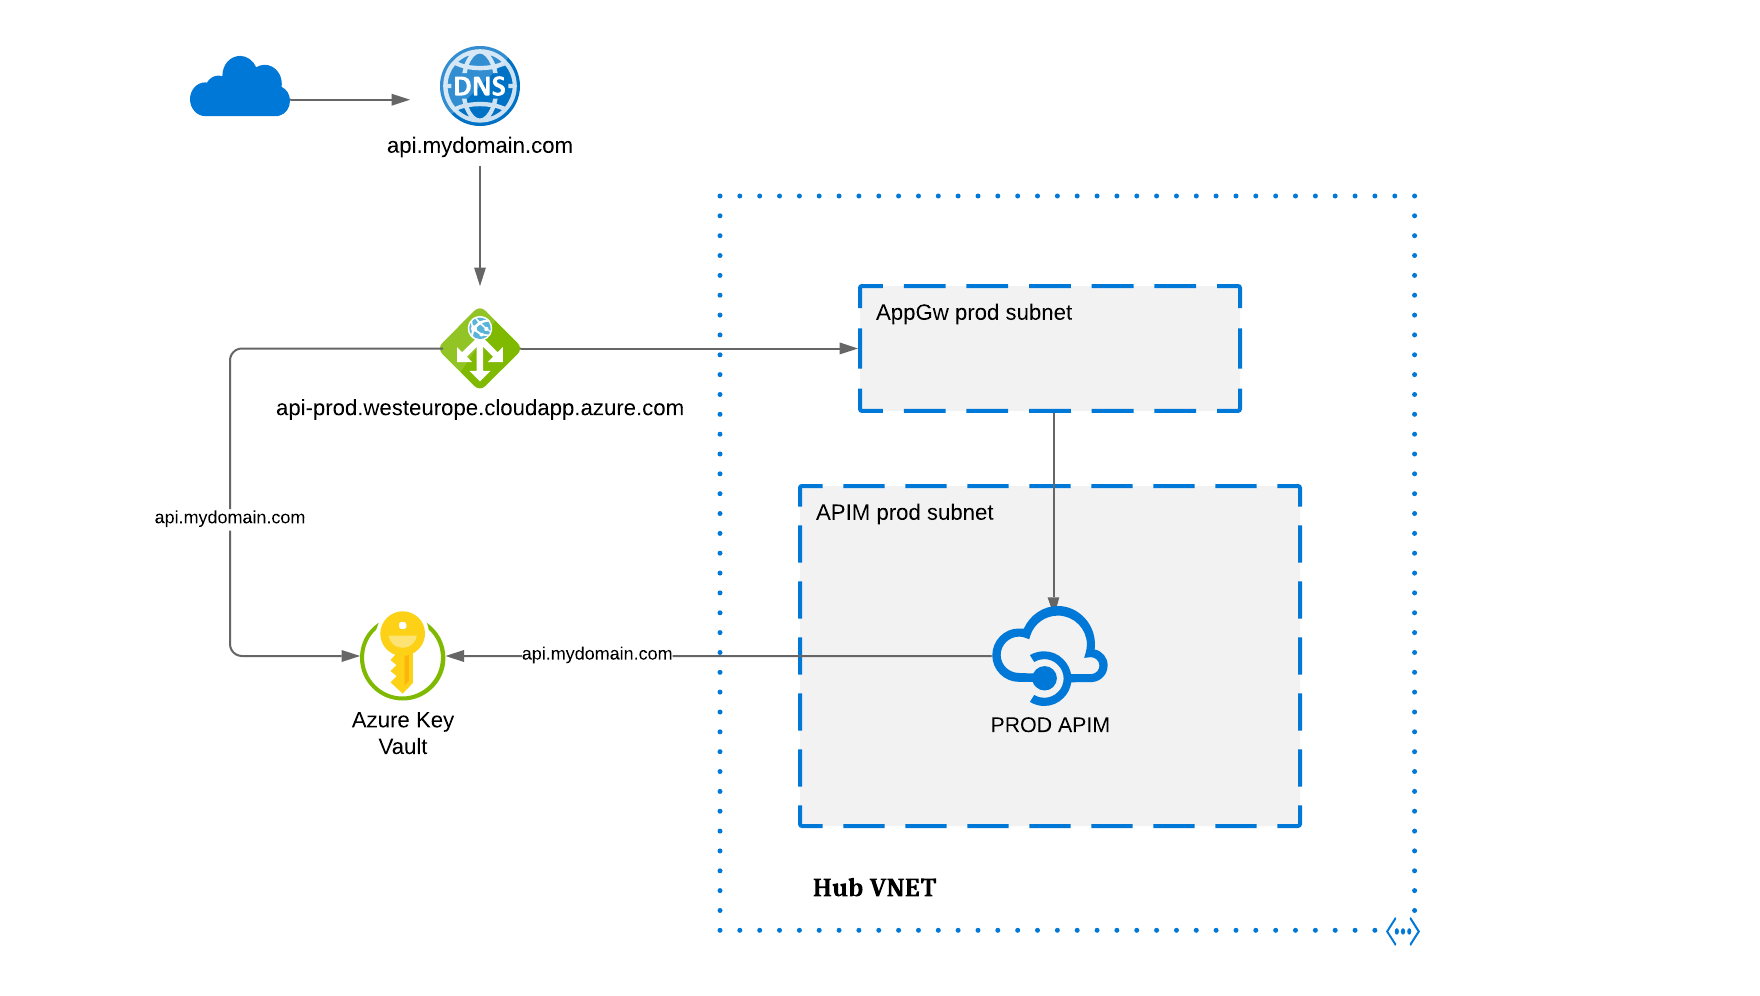 Api Management running in internal mode under Hub Vnet with AppGw and Key Vault.